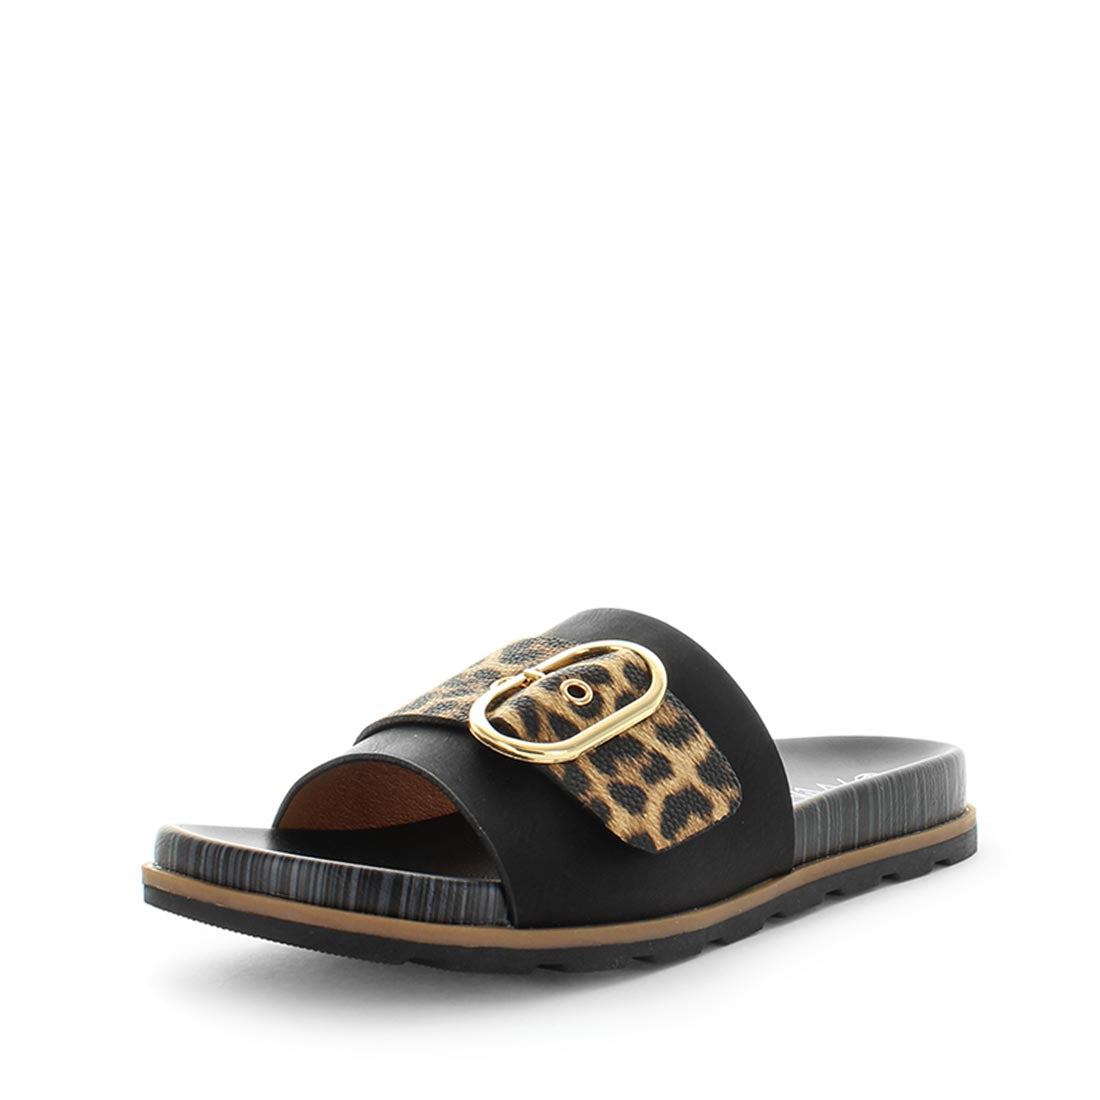 Samoa by wilde - fashion setting slides with leopard print uppers and nice bright buckel - comfort footbed and flexible sandal - black